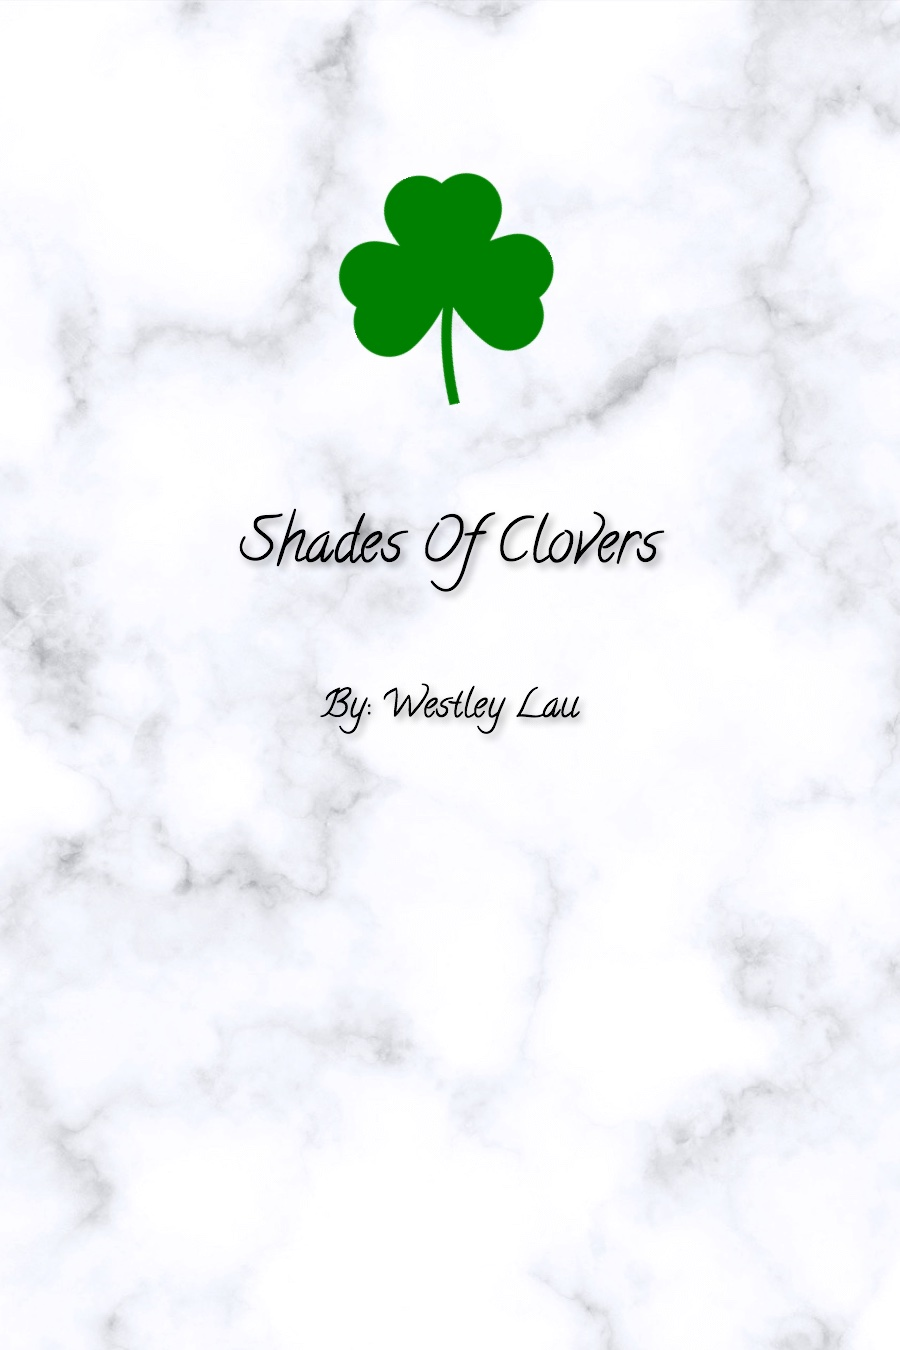 Shades Of Clovers